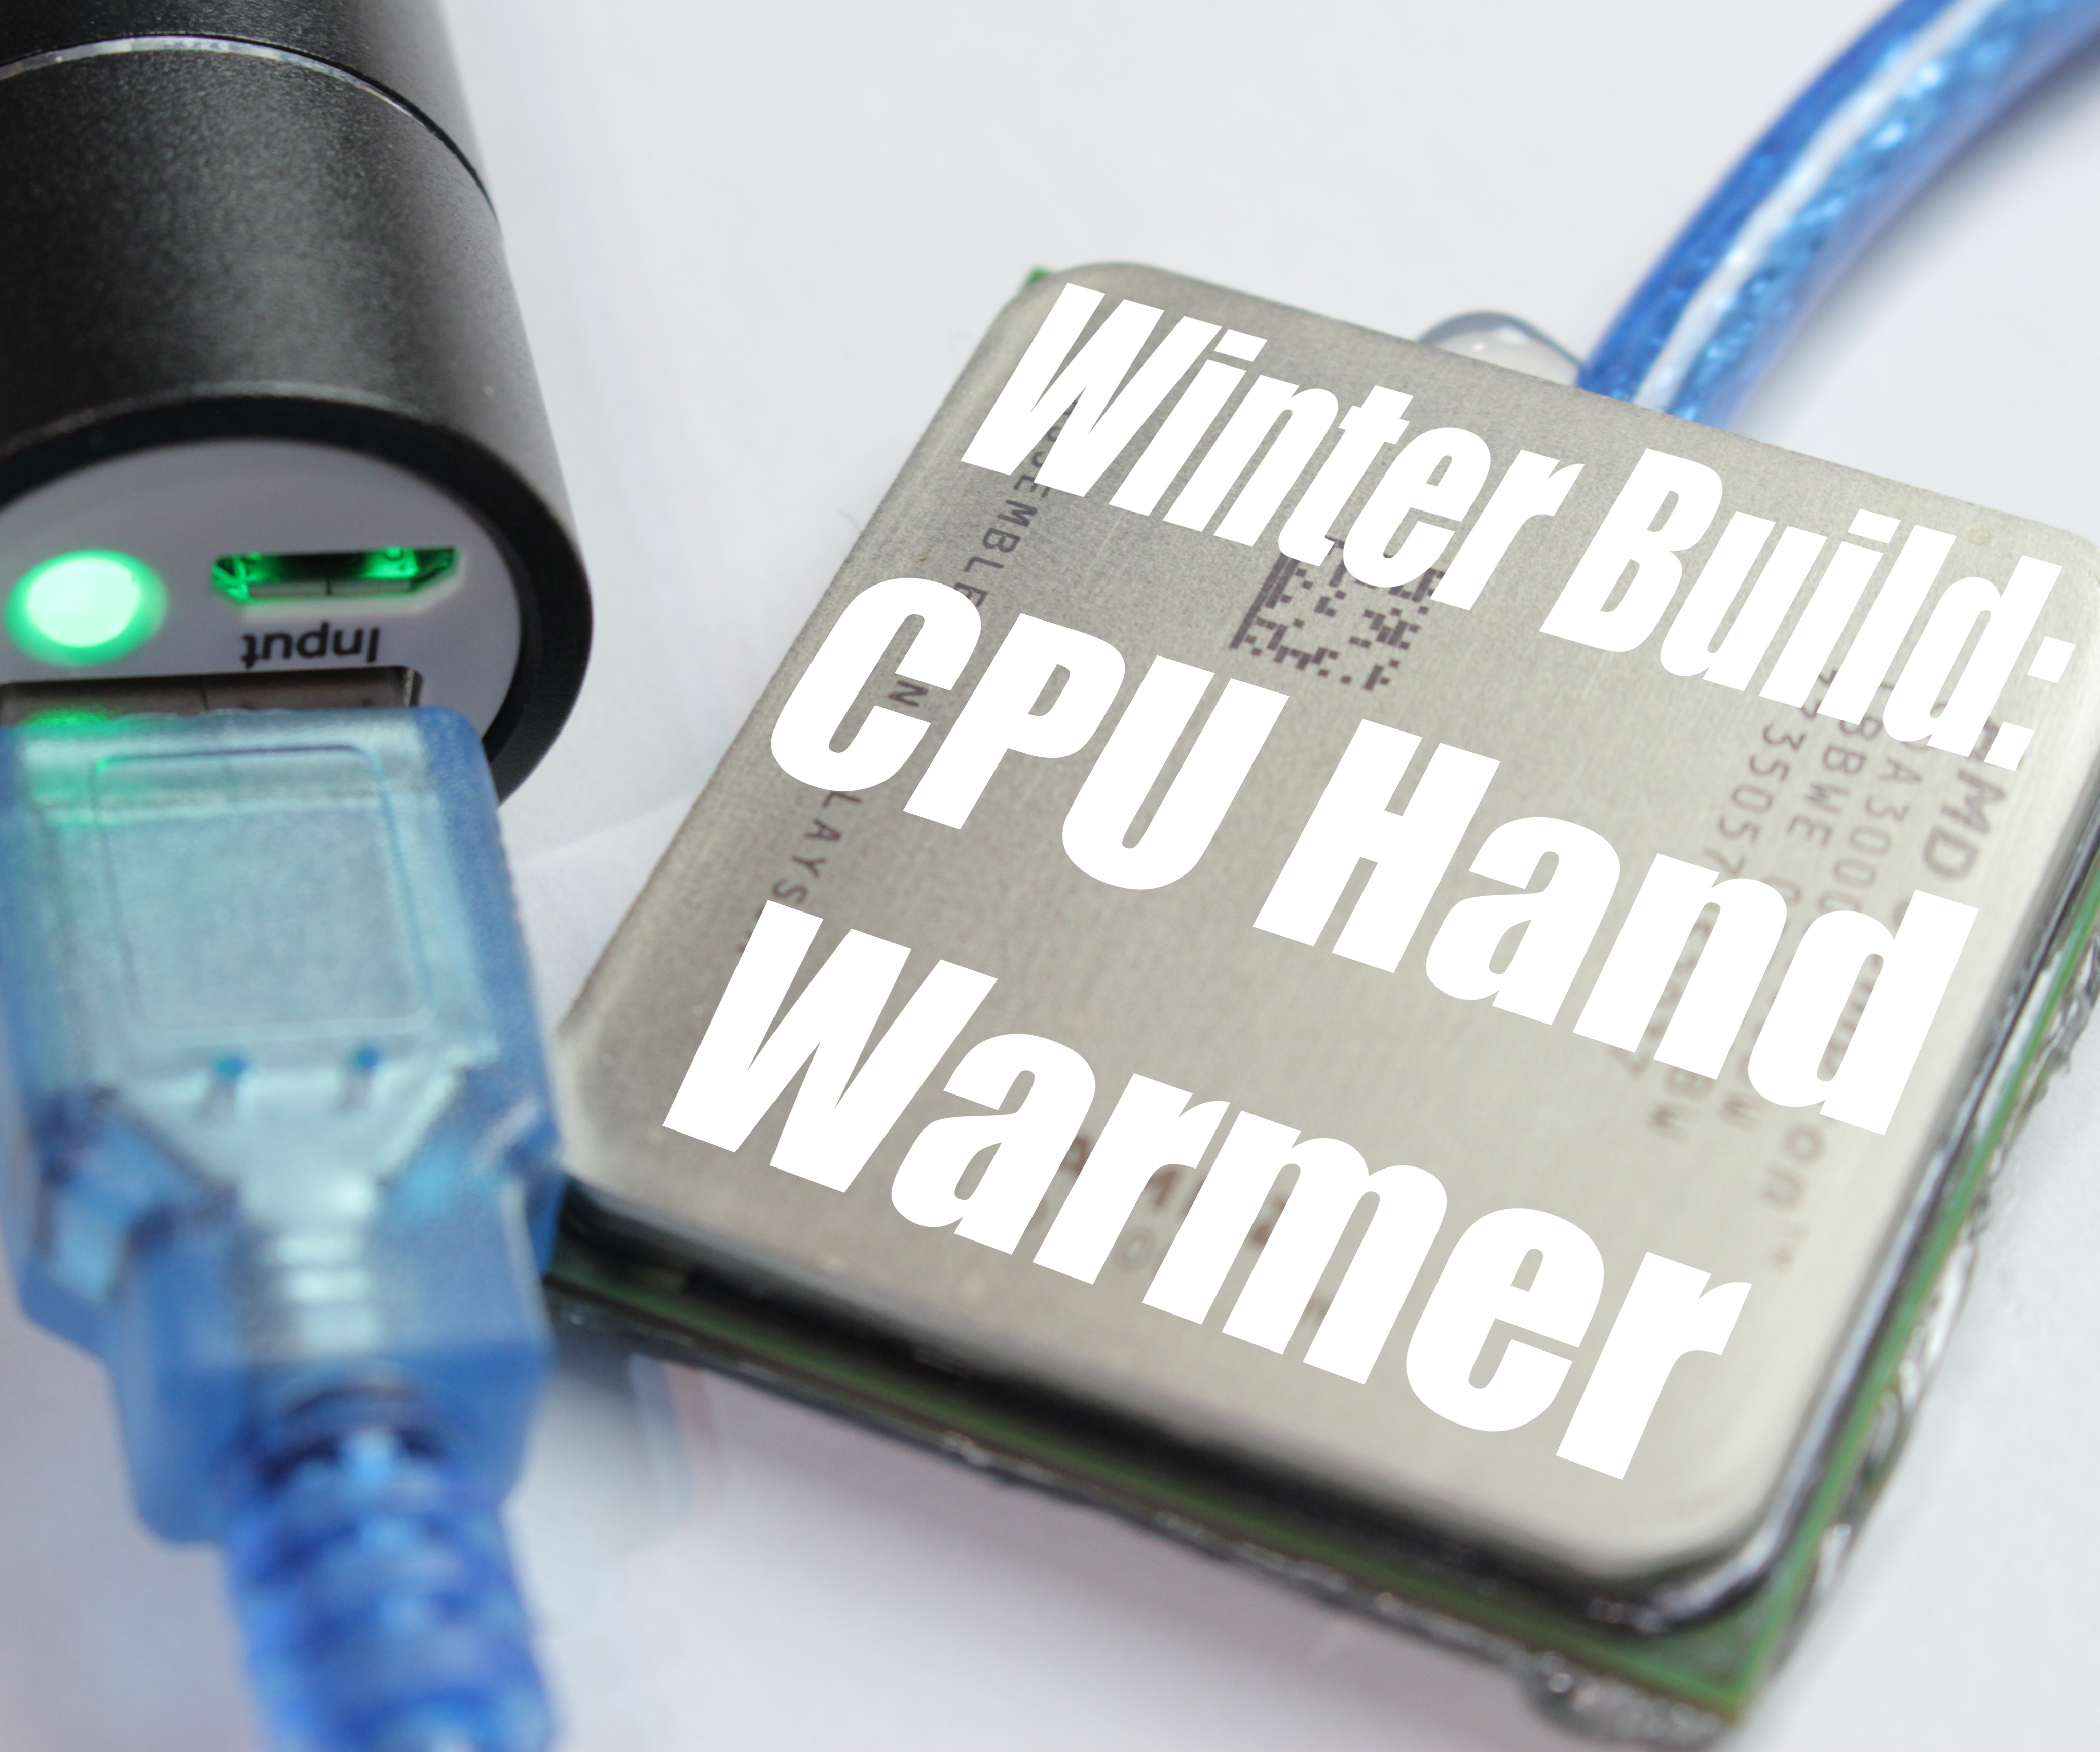 Stay warm this winter: CPU Hand Warmer